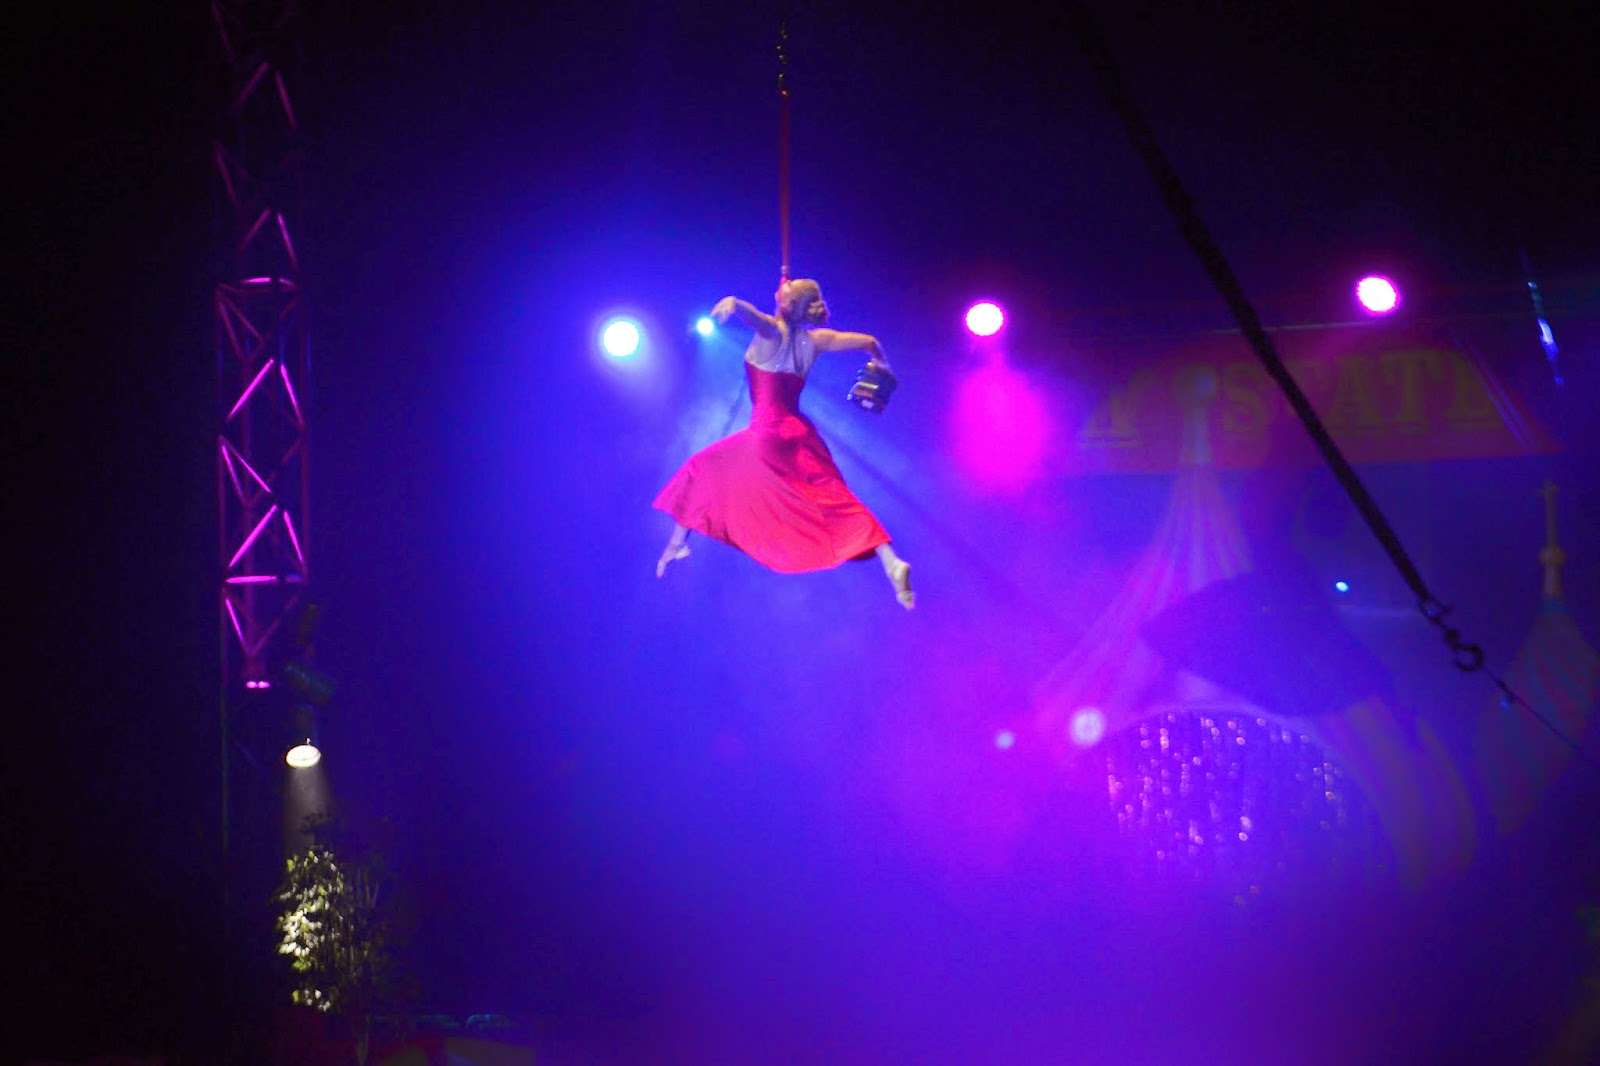 a circus act where the performer is suspended in the air